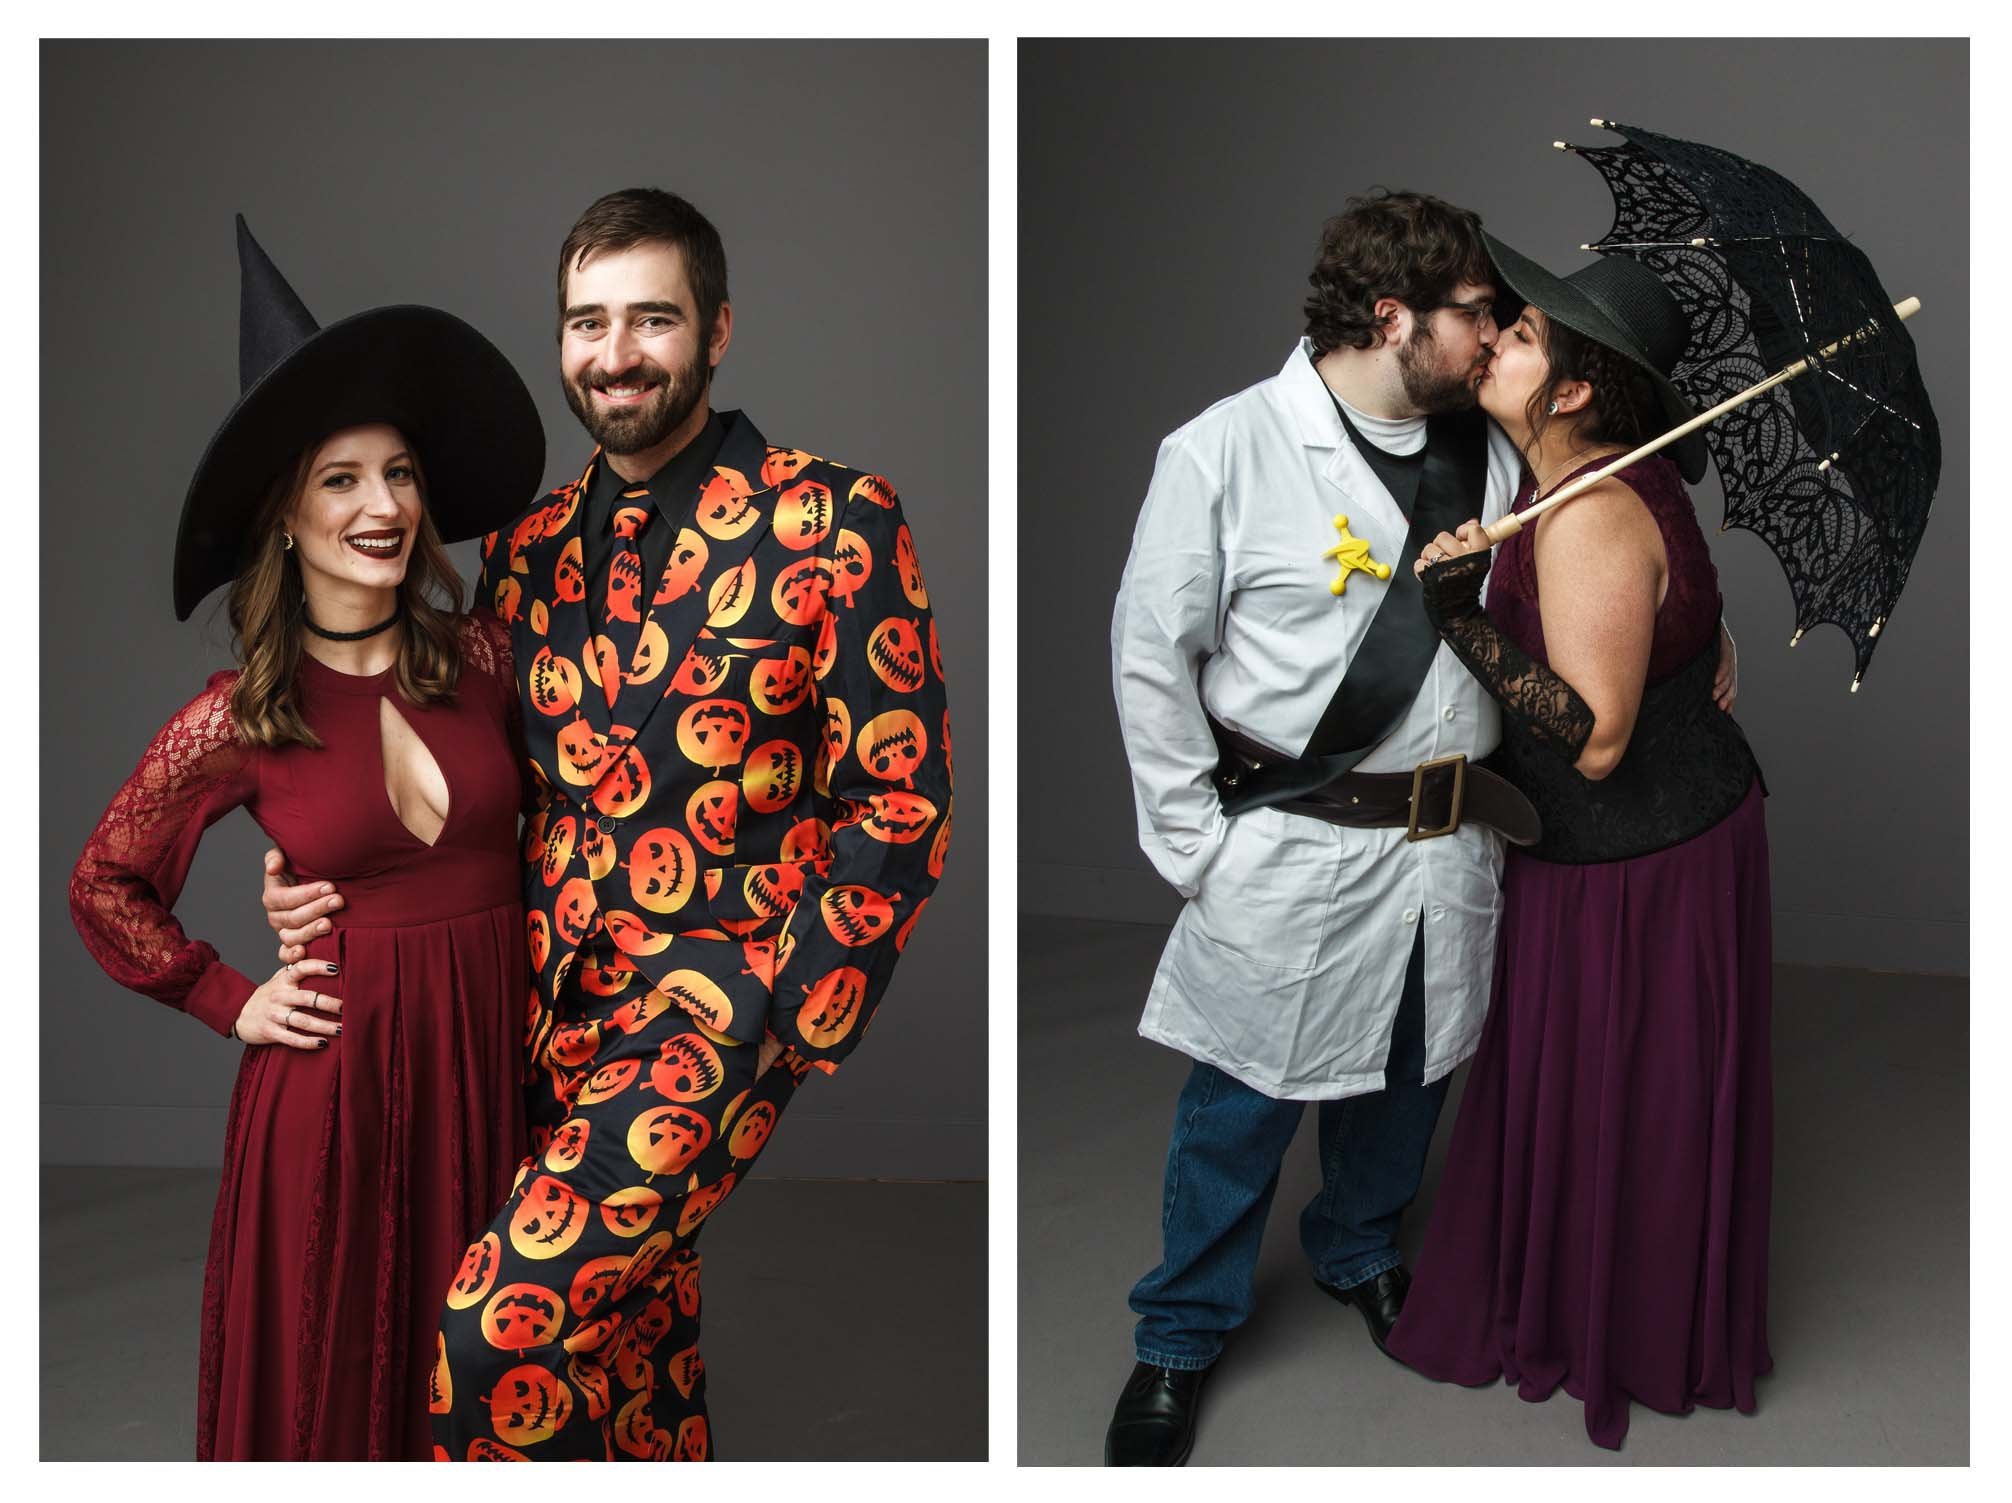 costumes portraits.jpg